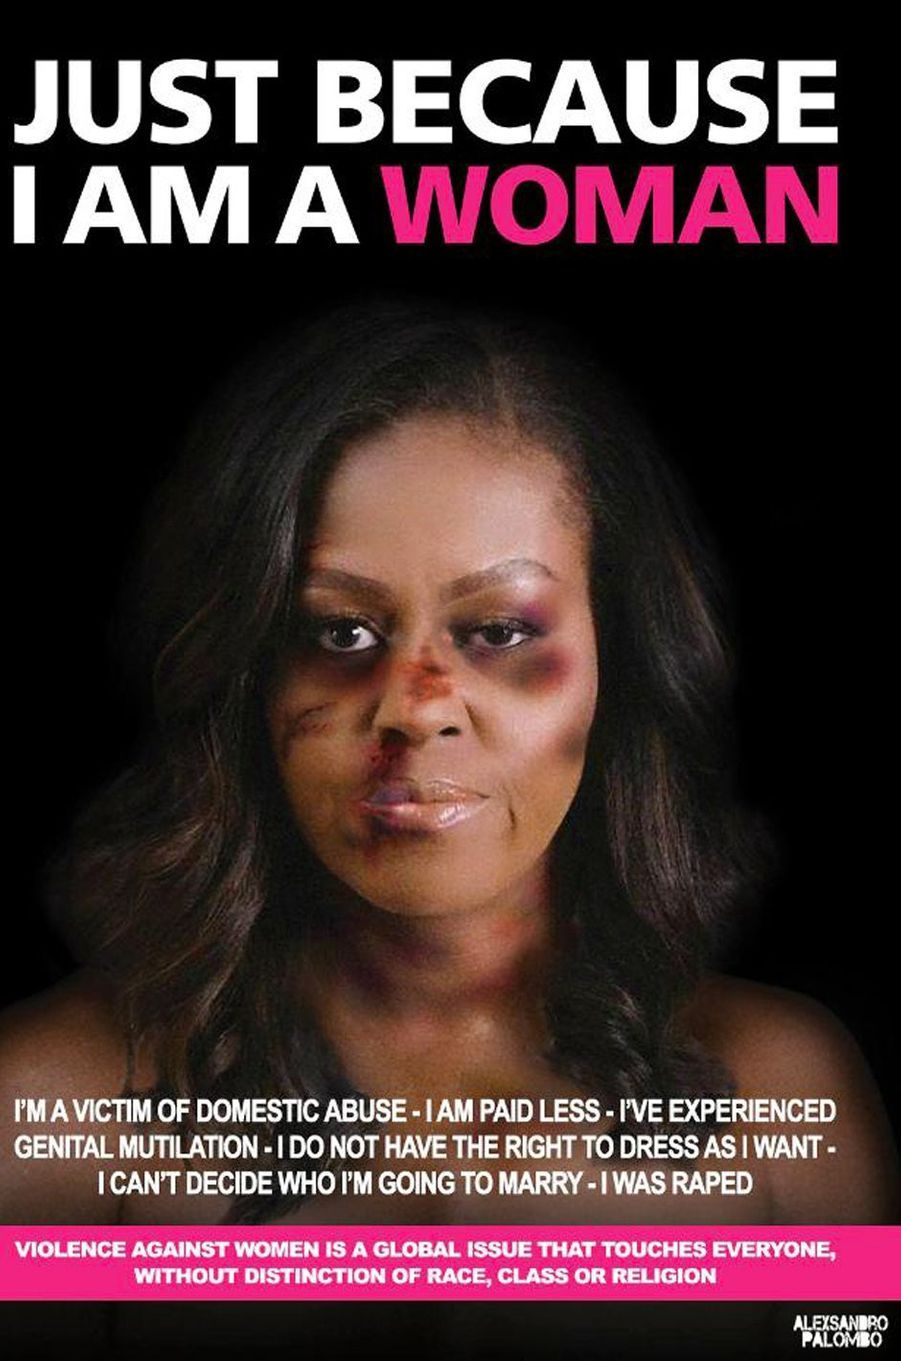 La campagne «Just because I am a Woman» de l'artiste AleXsandro Palombo. Ici Michelle Obama.